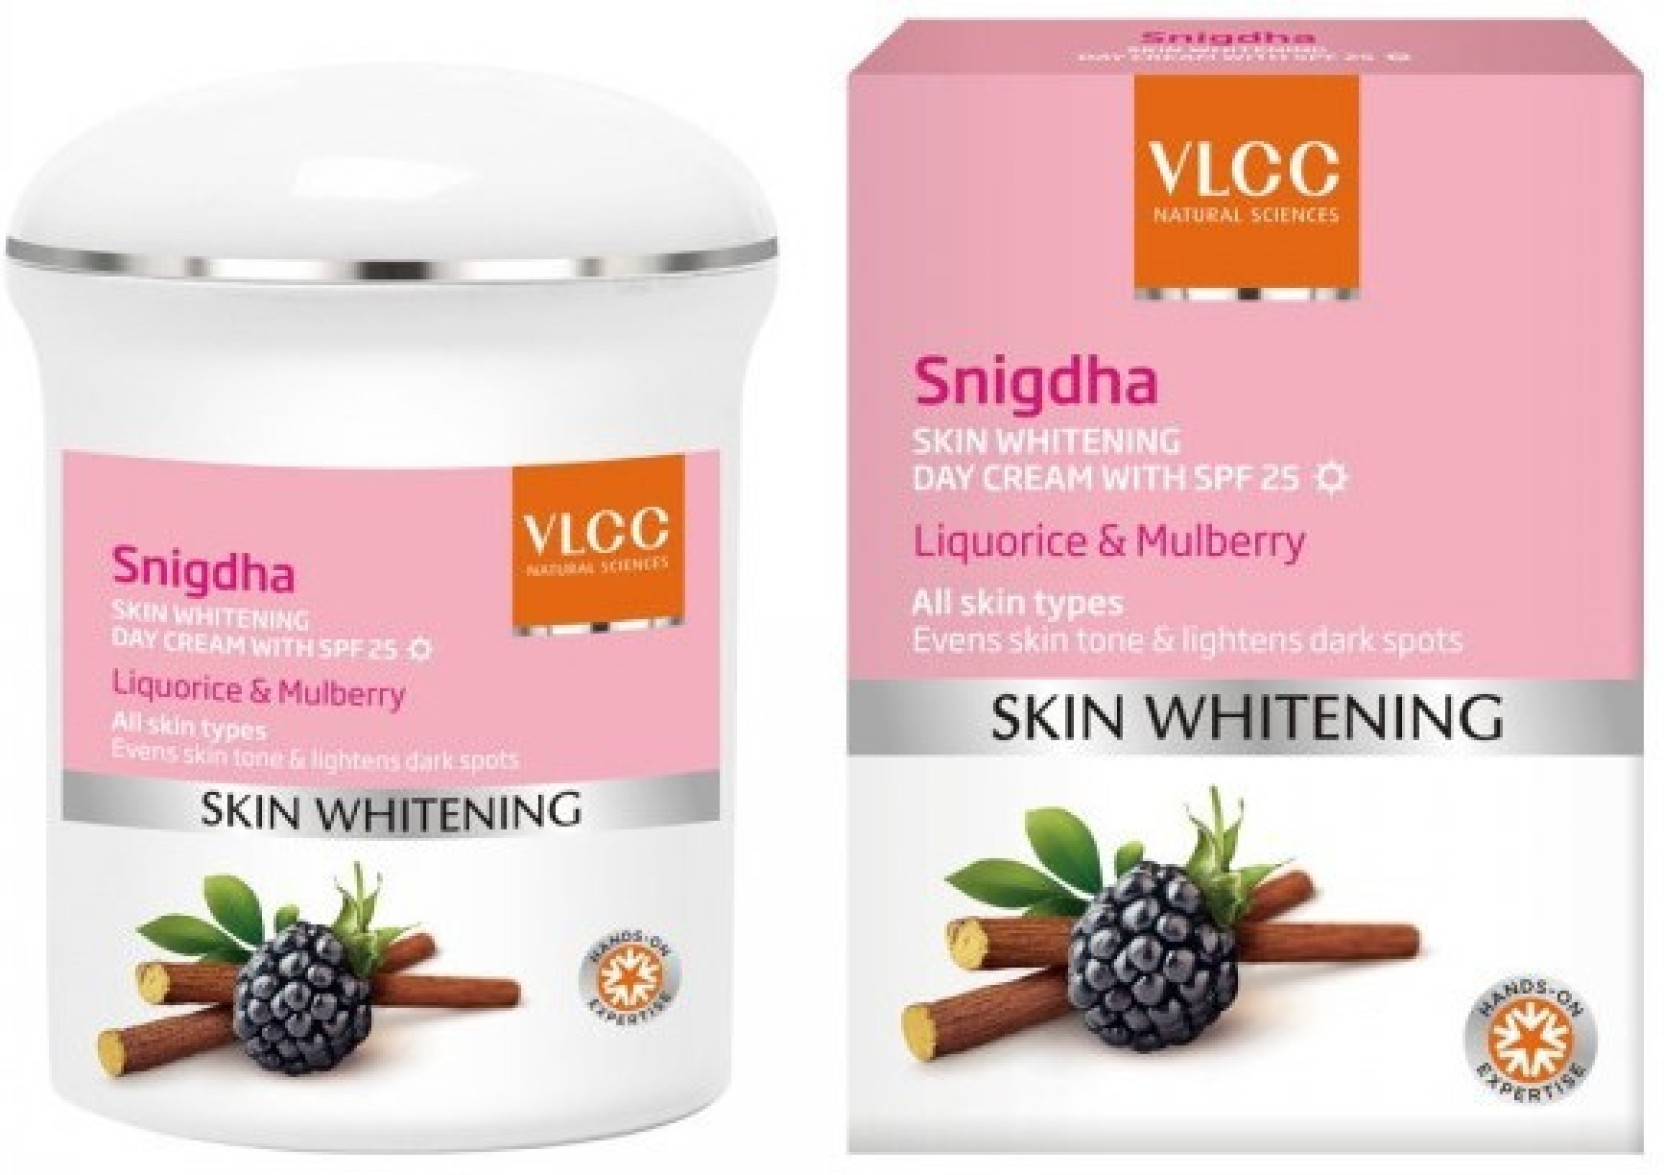 VLCC Snigdha Skin Whitening Day Cream SPF 25